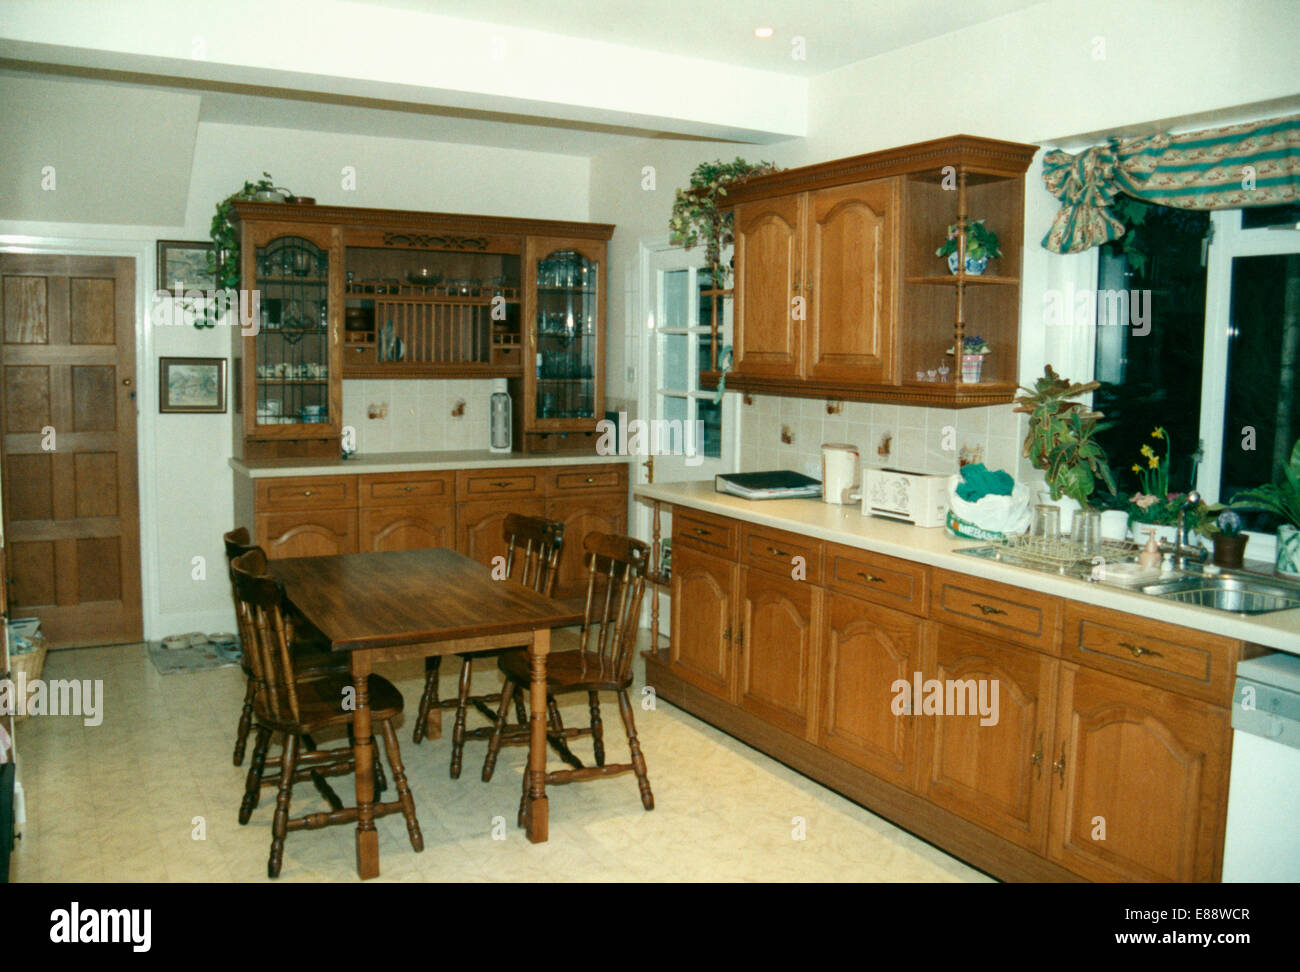 Wooden table and chairs in old-fashioned eighties kitchen before renovation - Stock Image